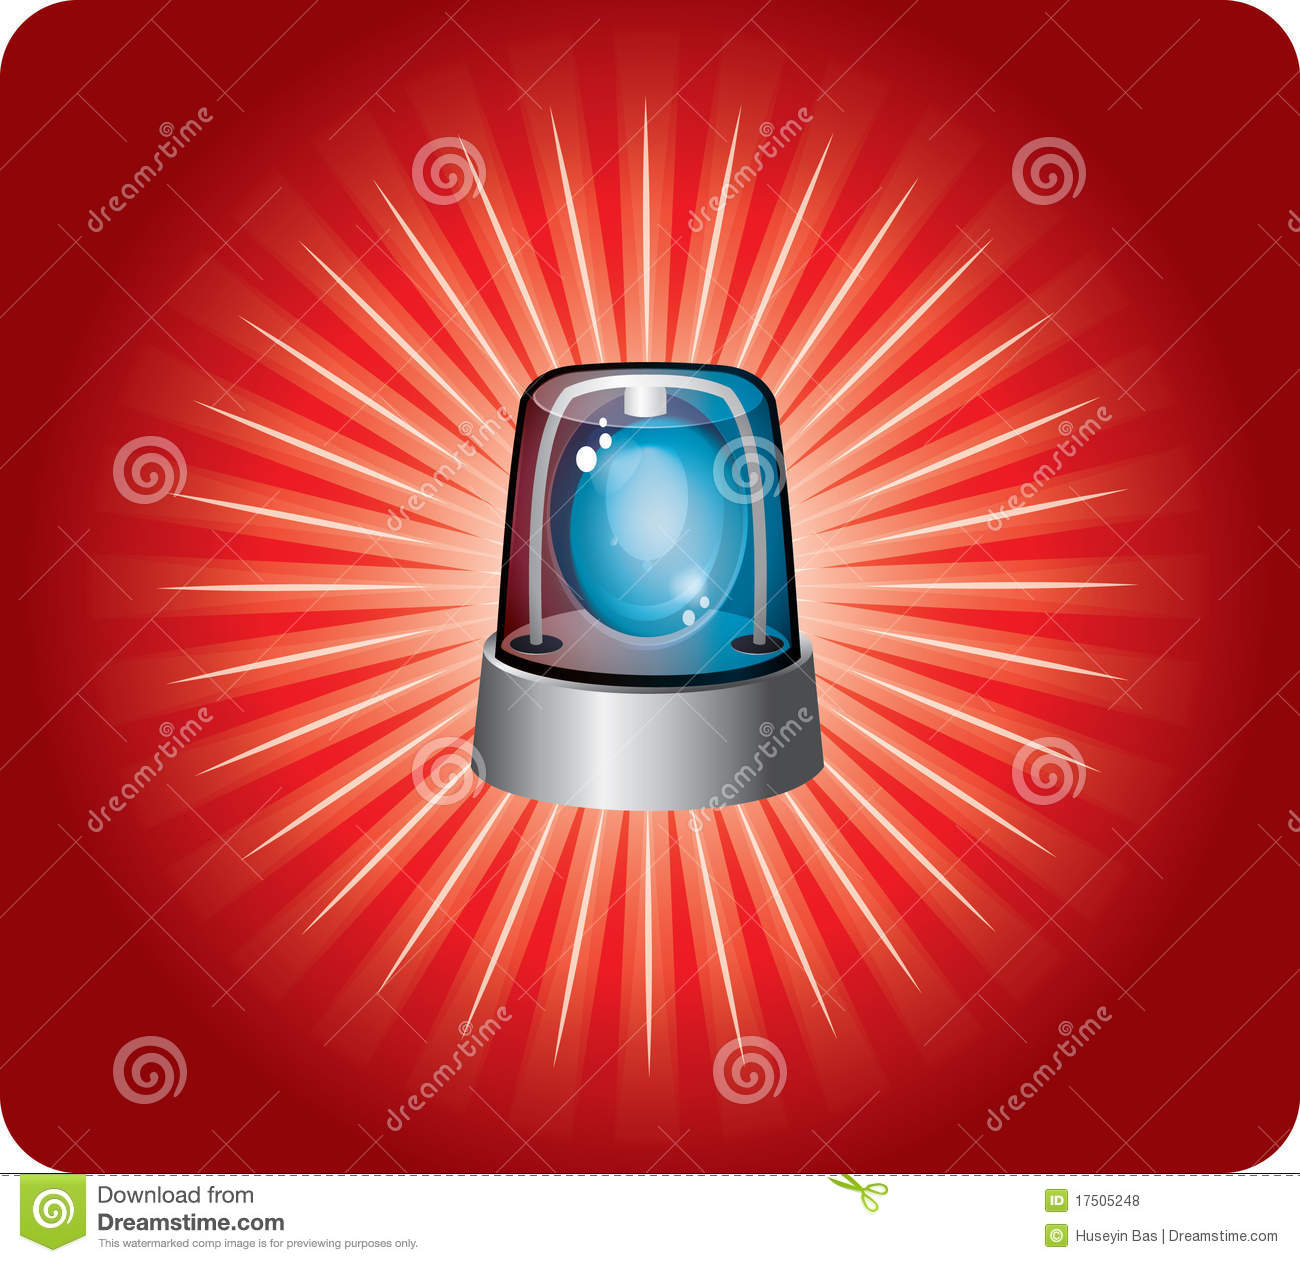 Warning lamp clipart - Clipground for Warning Light Clipart  269ane